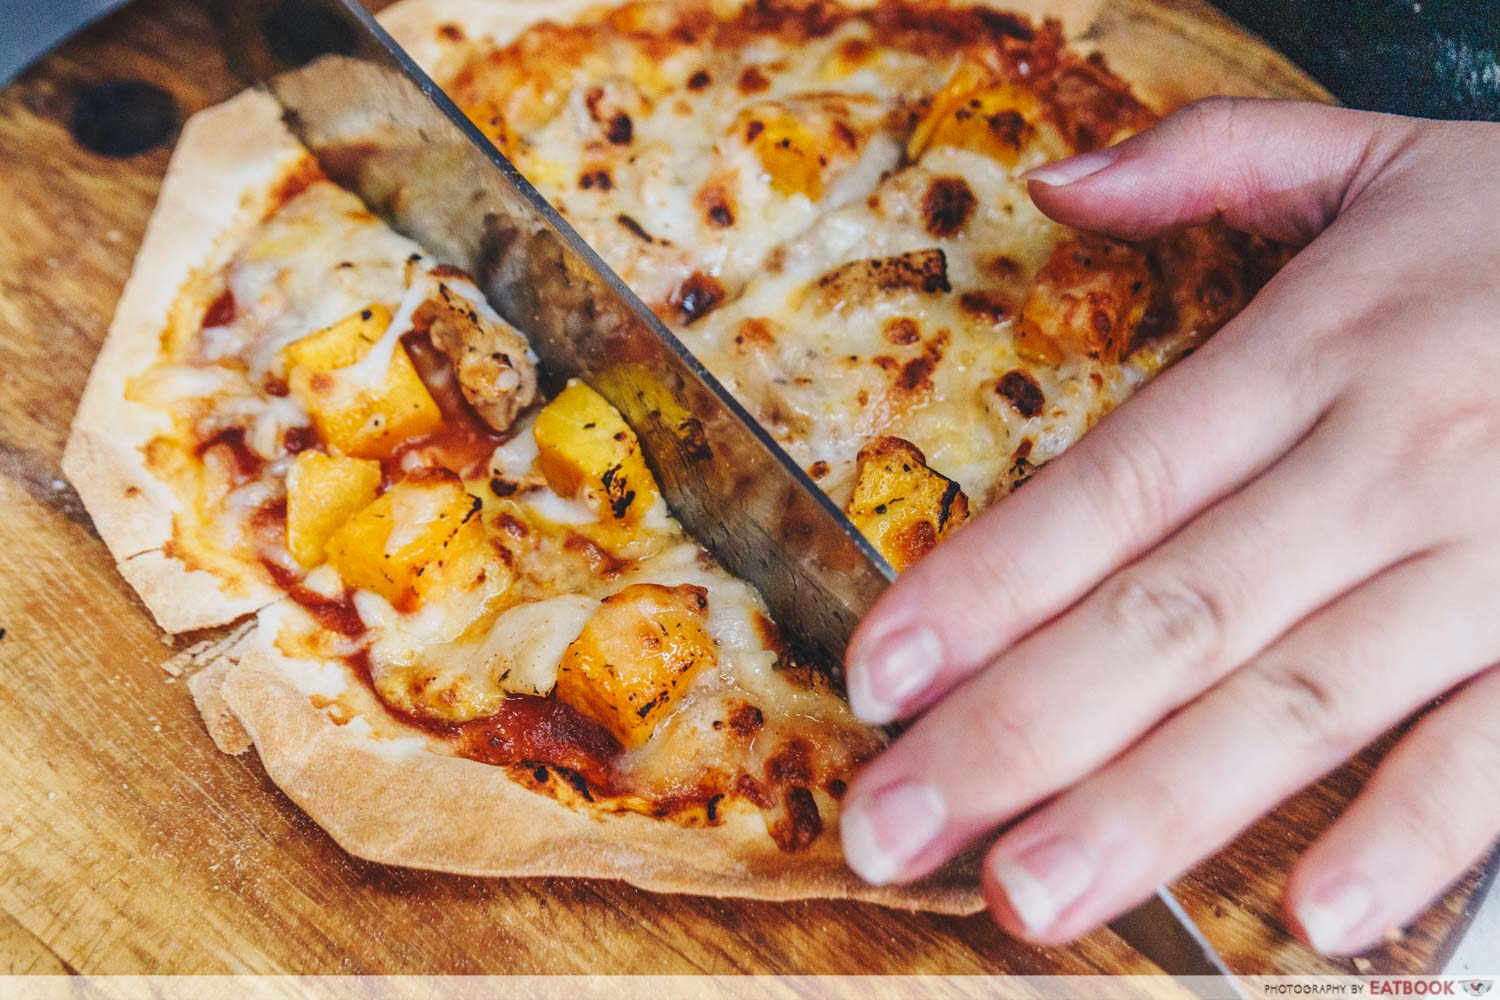 ButterNut - cut pizza